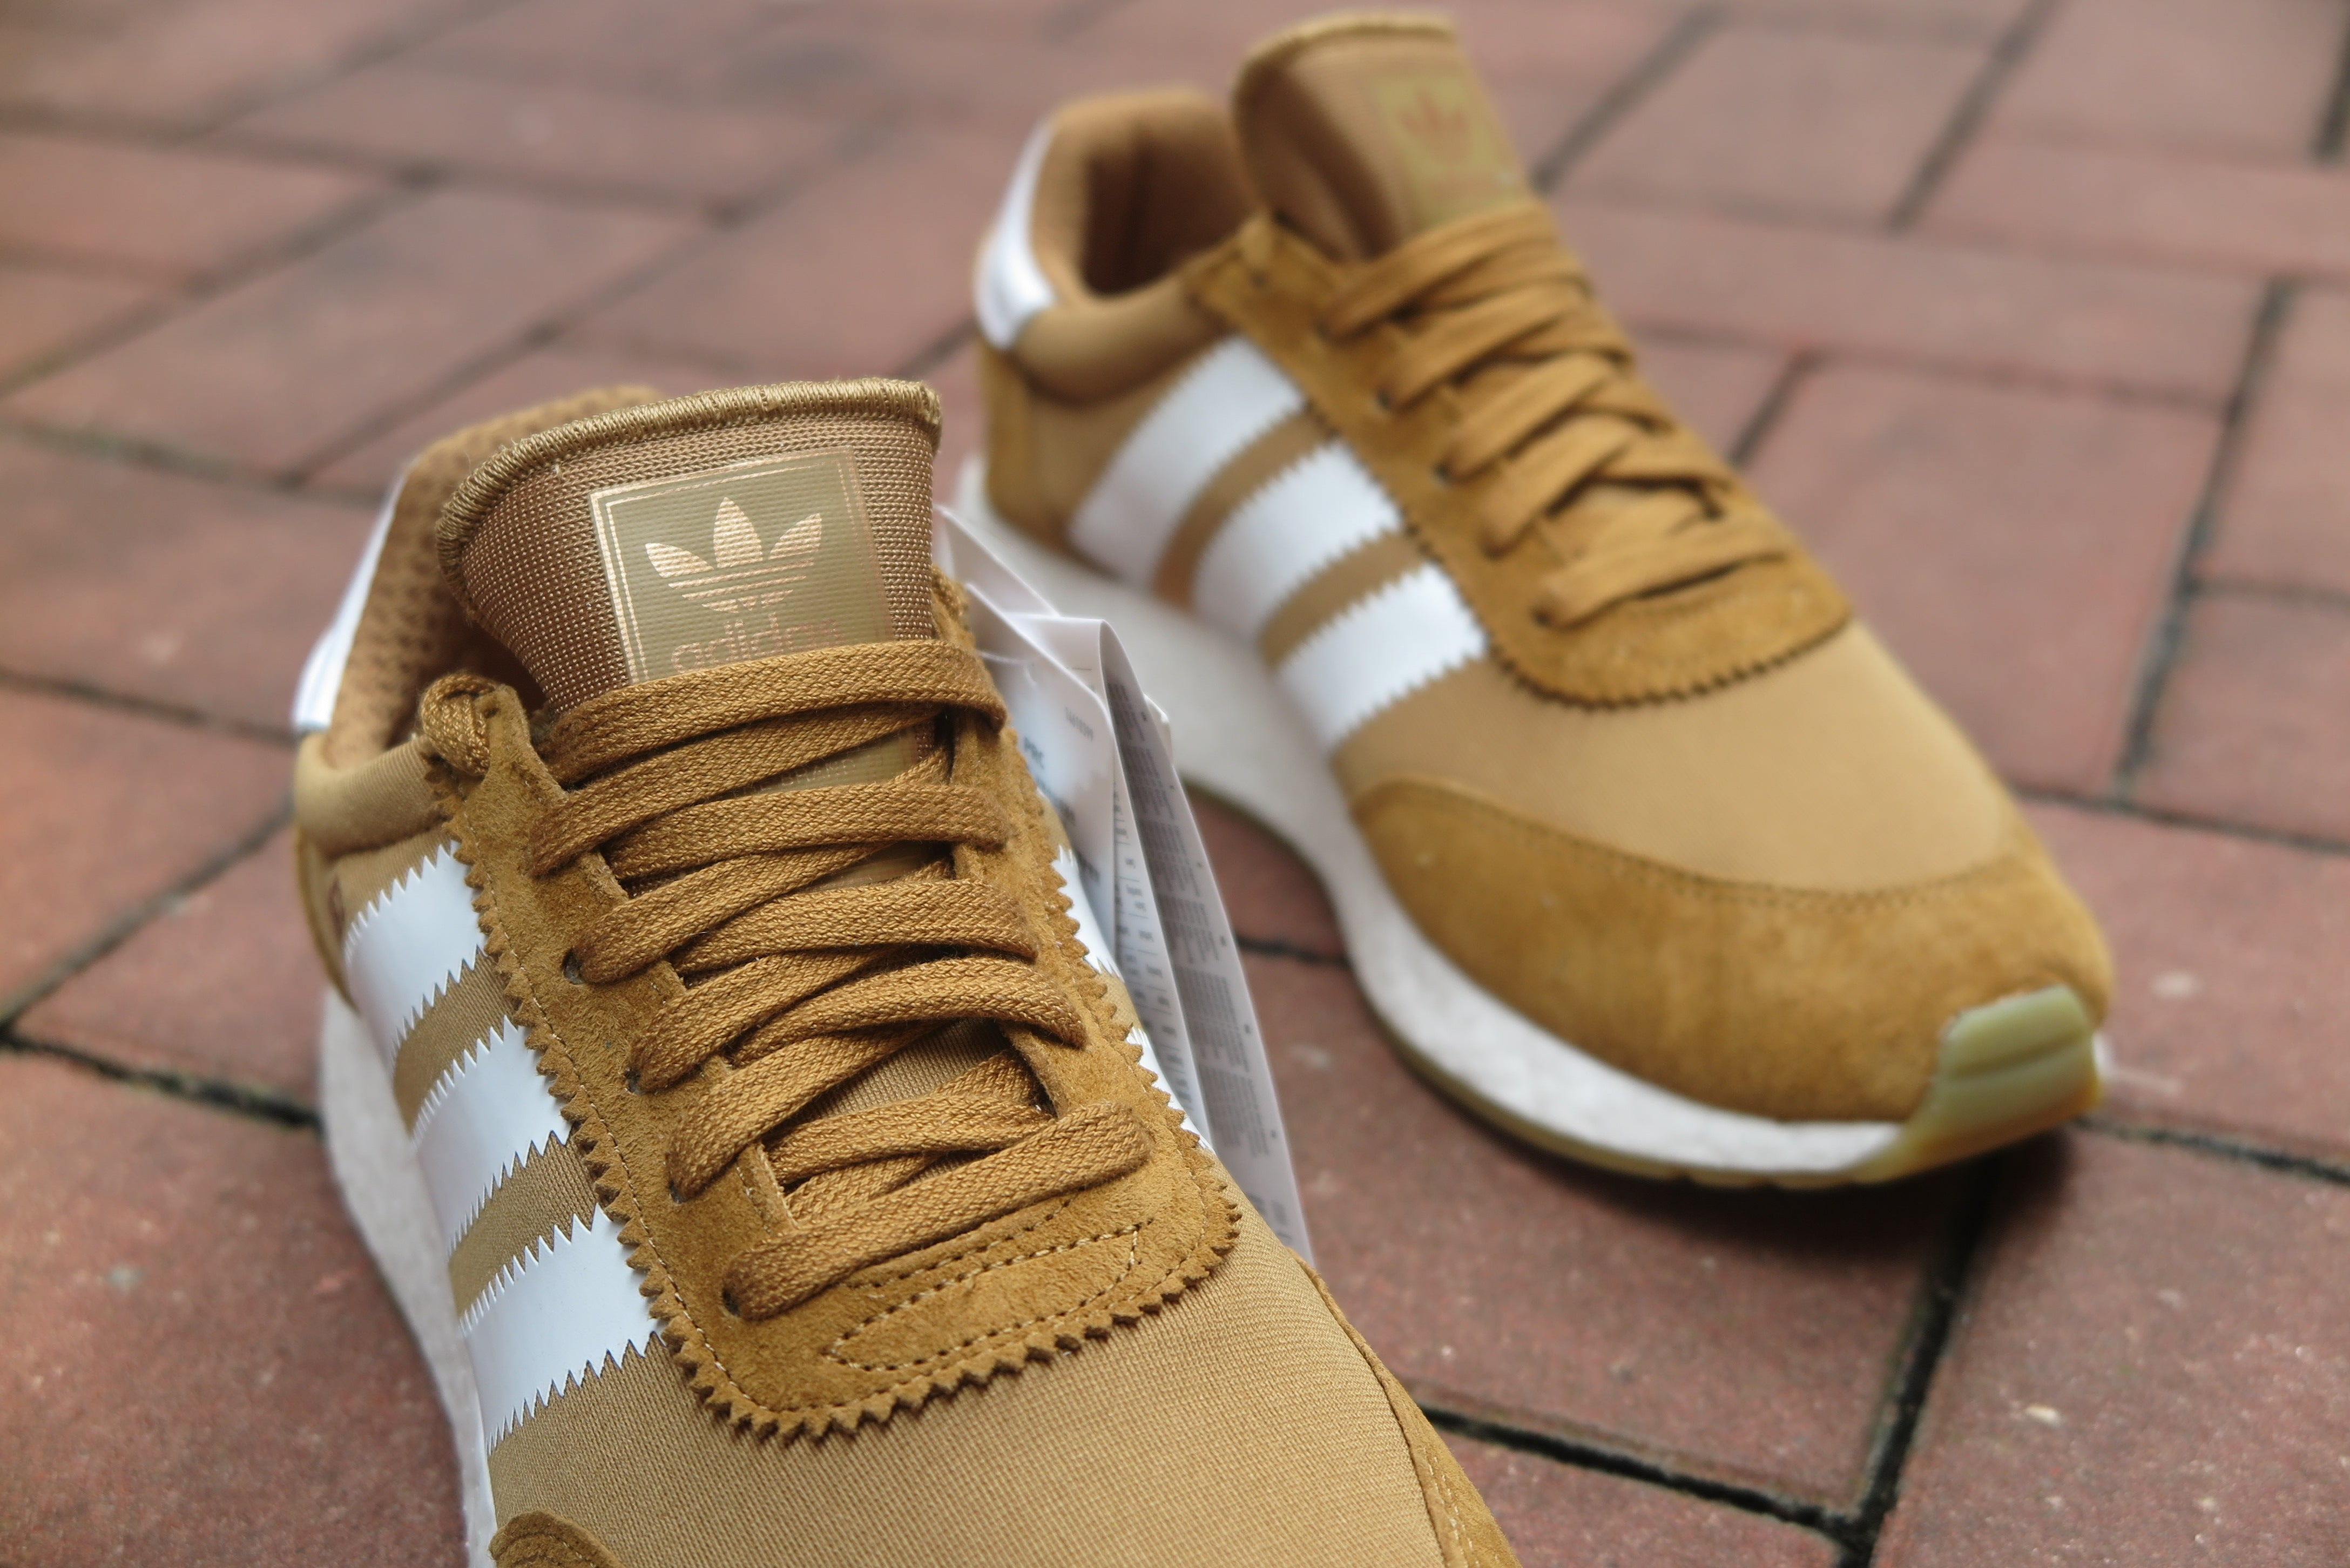 adidas I-5923 - Mesa/Footwear White/Gum #CQ2491-Preorder Item-Navy Selected Shop